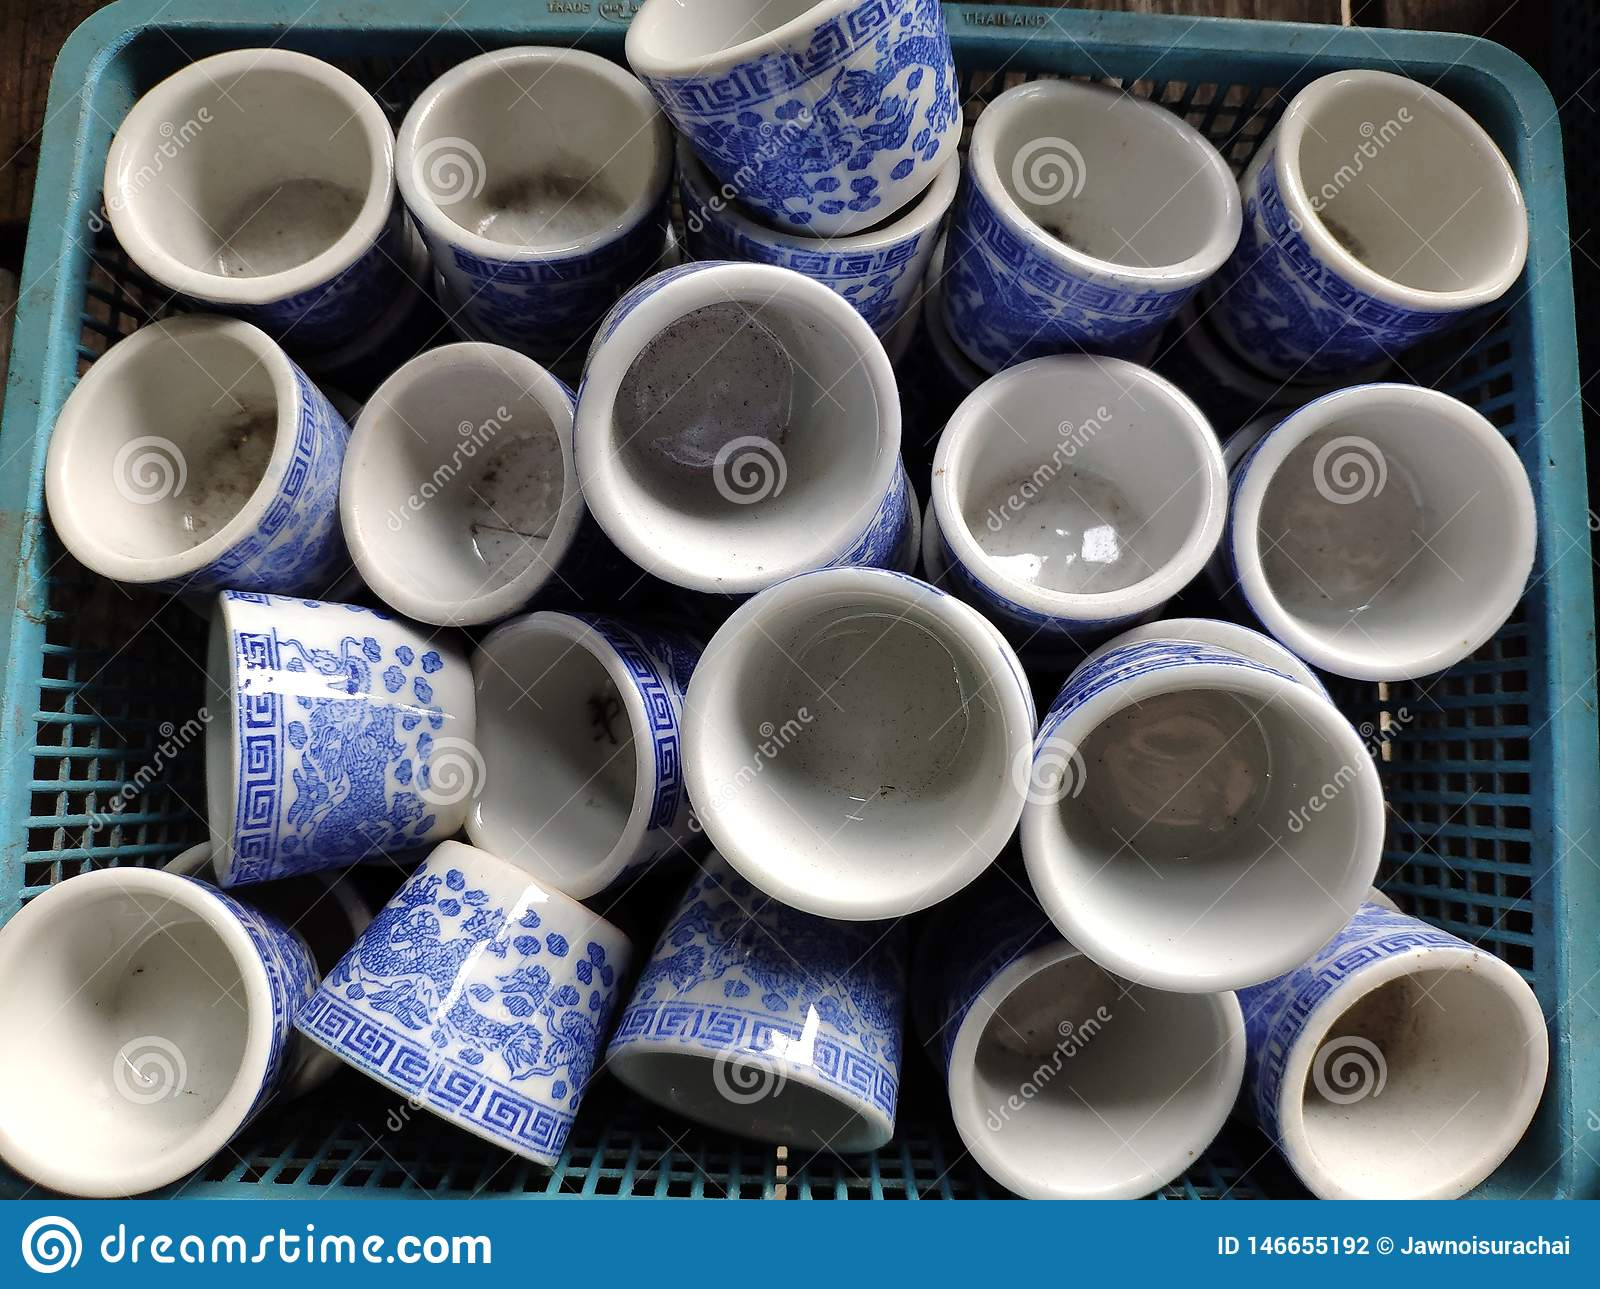 Chinese style cups used for drinking tea Placed on the blue basket.